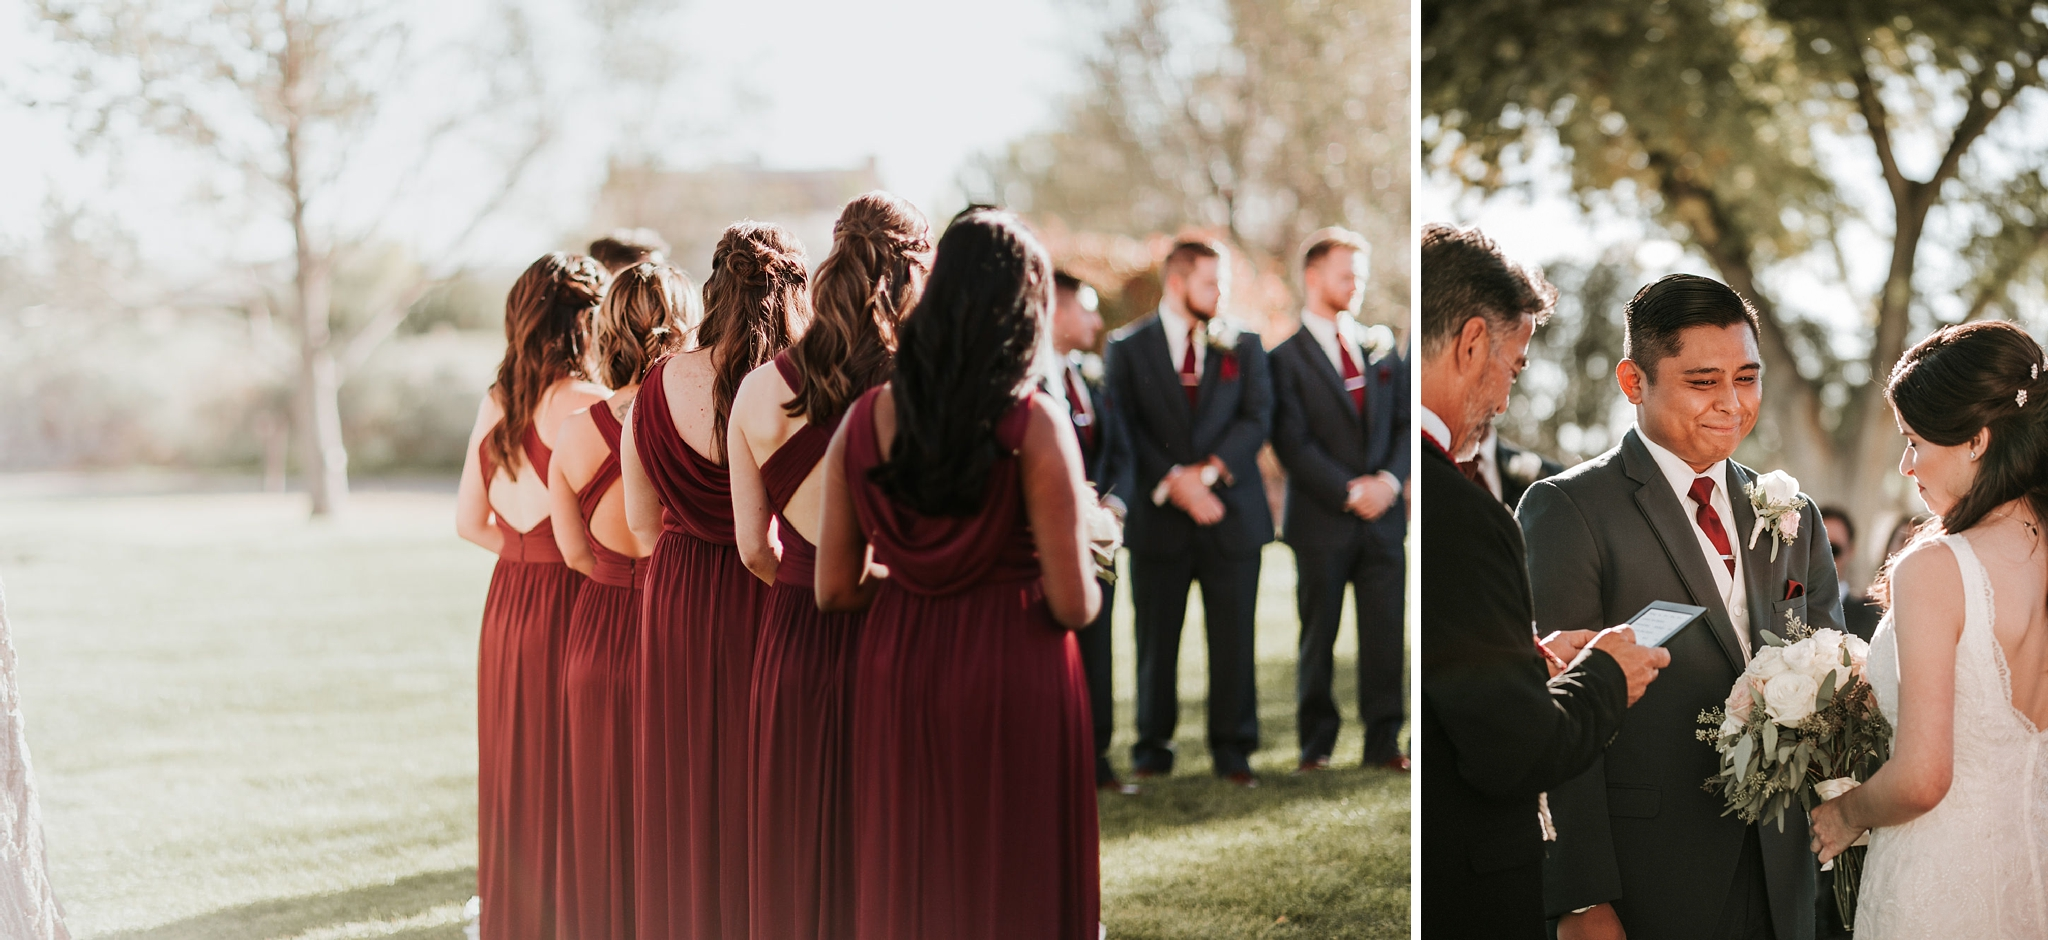 Alicia+lucia+photography+-+albuquerque+wedding+photographer+-+santa+fe+wedding+photography+-+new+mexico+wedding+photographer+-+new+mexico+wedding+-+wedding+vows+-+writing+your+own+vows+-+wedding+inspo_0009.jpg